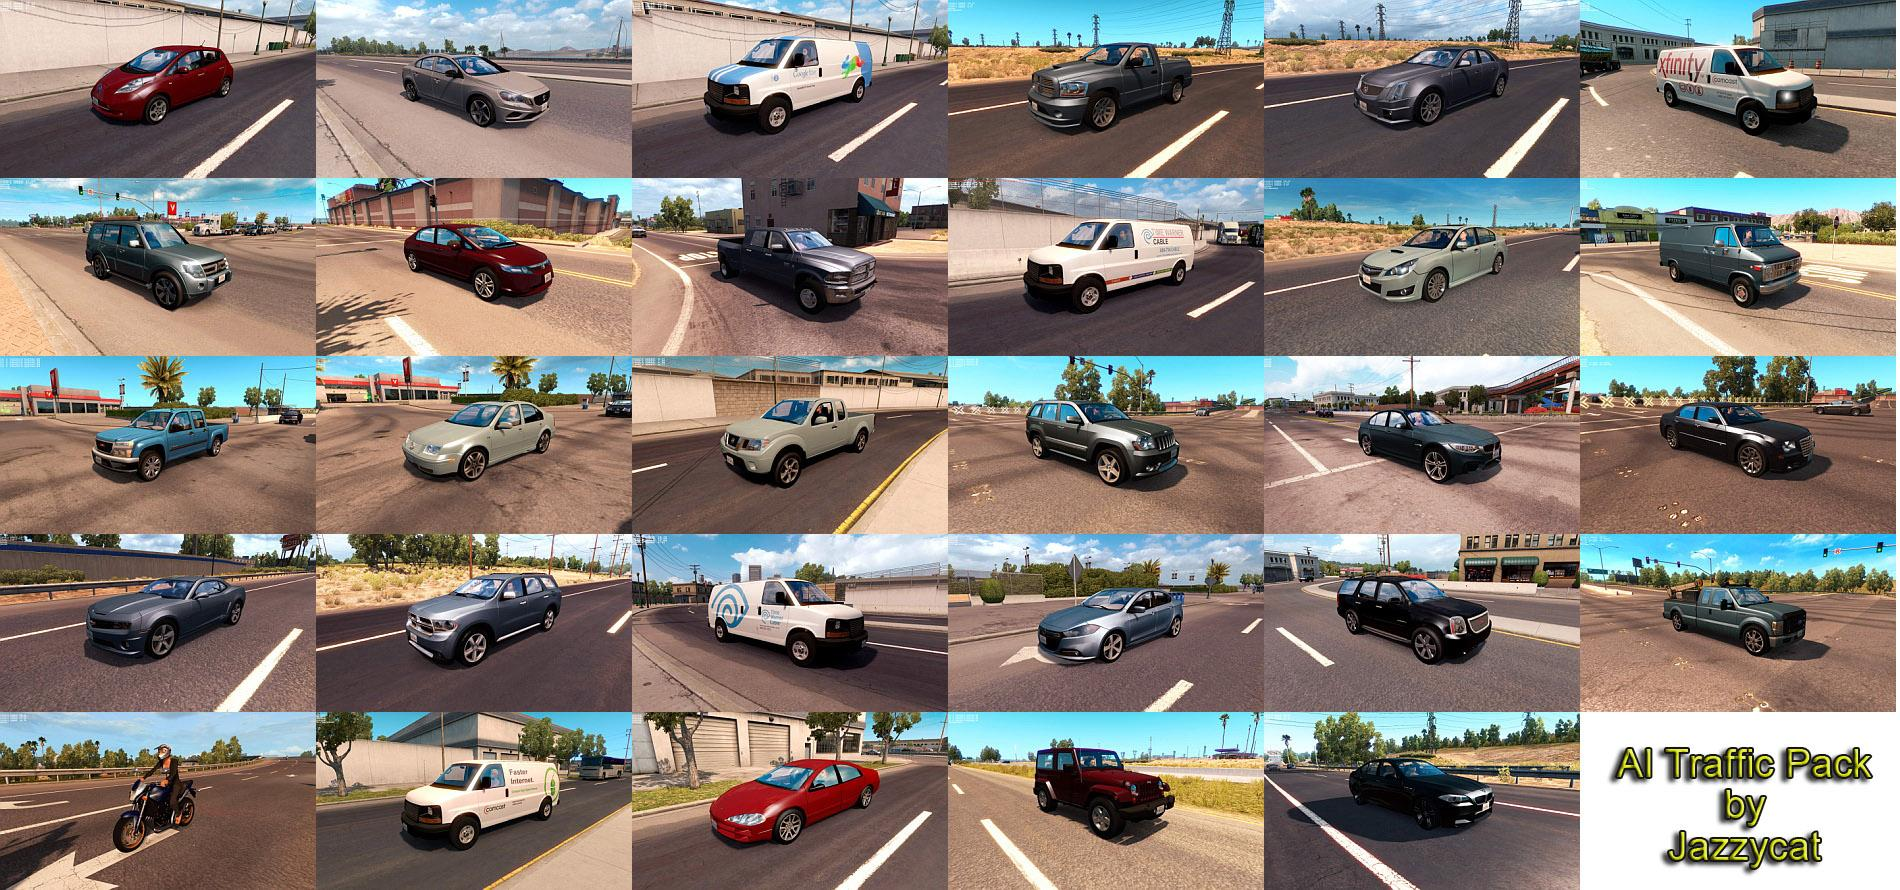 7309-ai-traffic-pack-by-jazzycat-v2-3_1